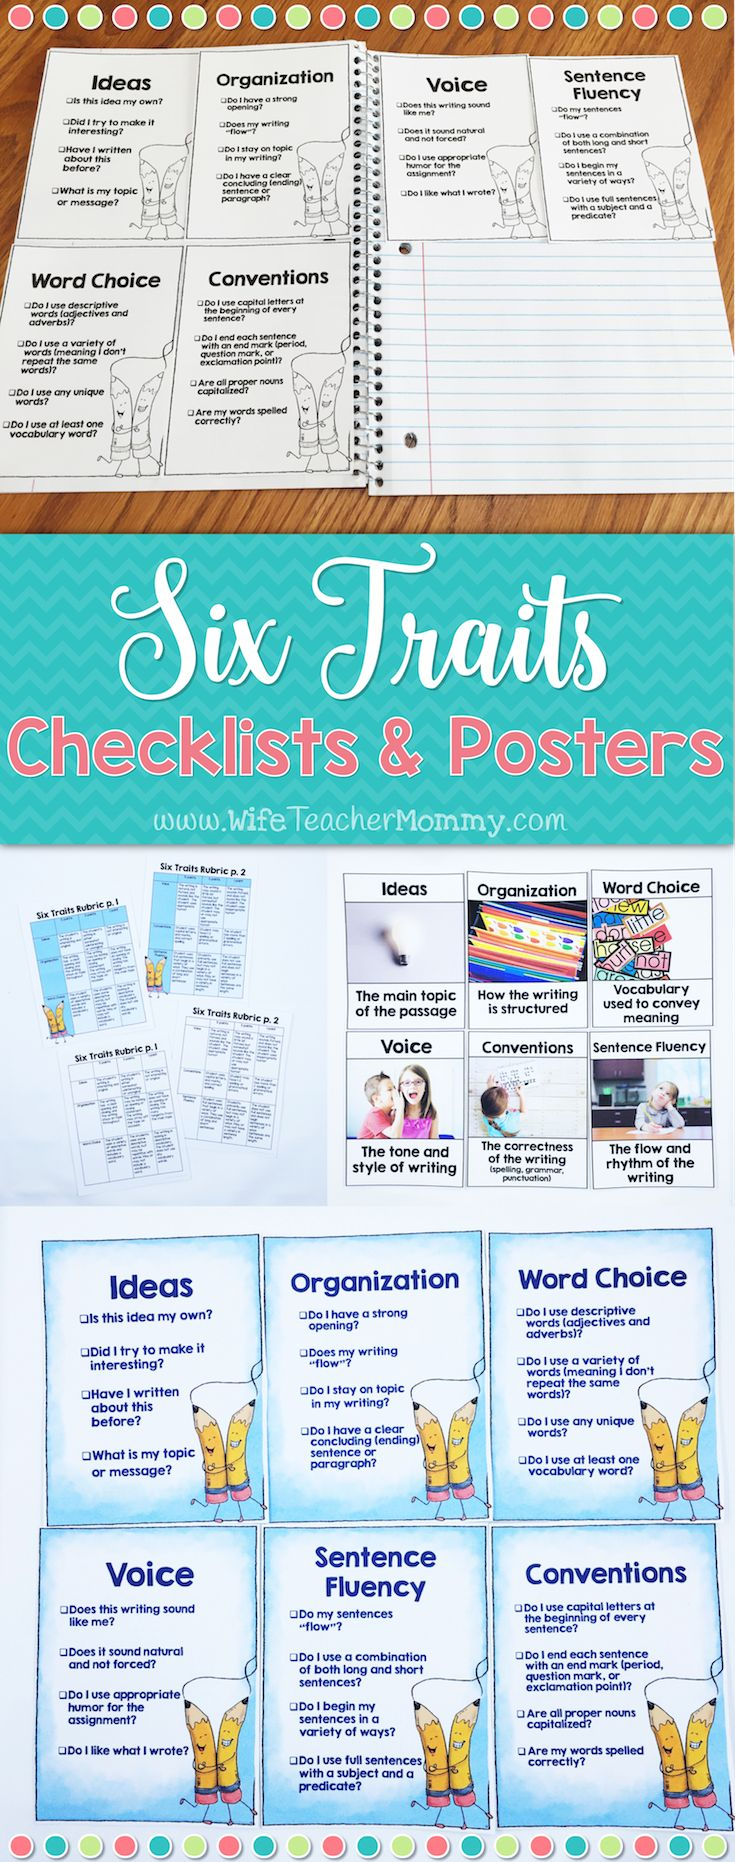 Help your students assess their own writing using the six traits checklists and 6 traits posters! Perfect for writing notebooks and writer's workshop. A checklist is included for each trait with 4 questions for the students to answer about their writing. They are perfect for students to tape into their writing notebooks and use every time they write! Fun colorful AND ink-saving black and white checklists included!   Page sized posters with REAL PICTURES are also included for each of the six…